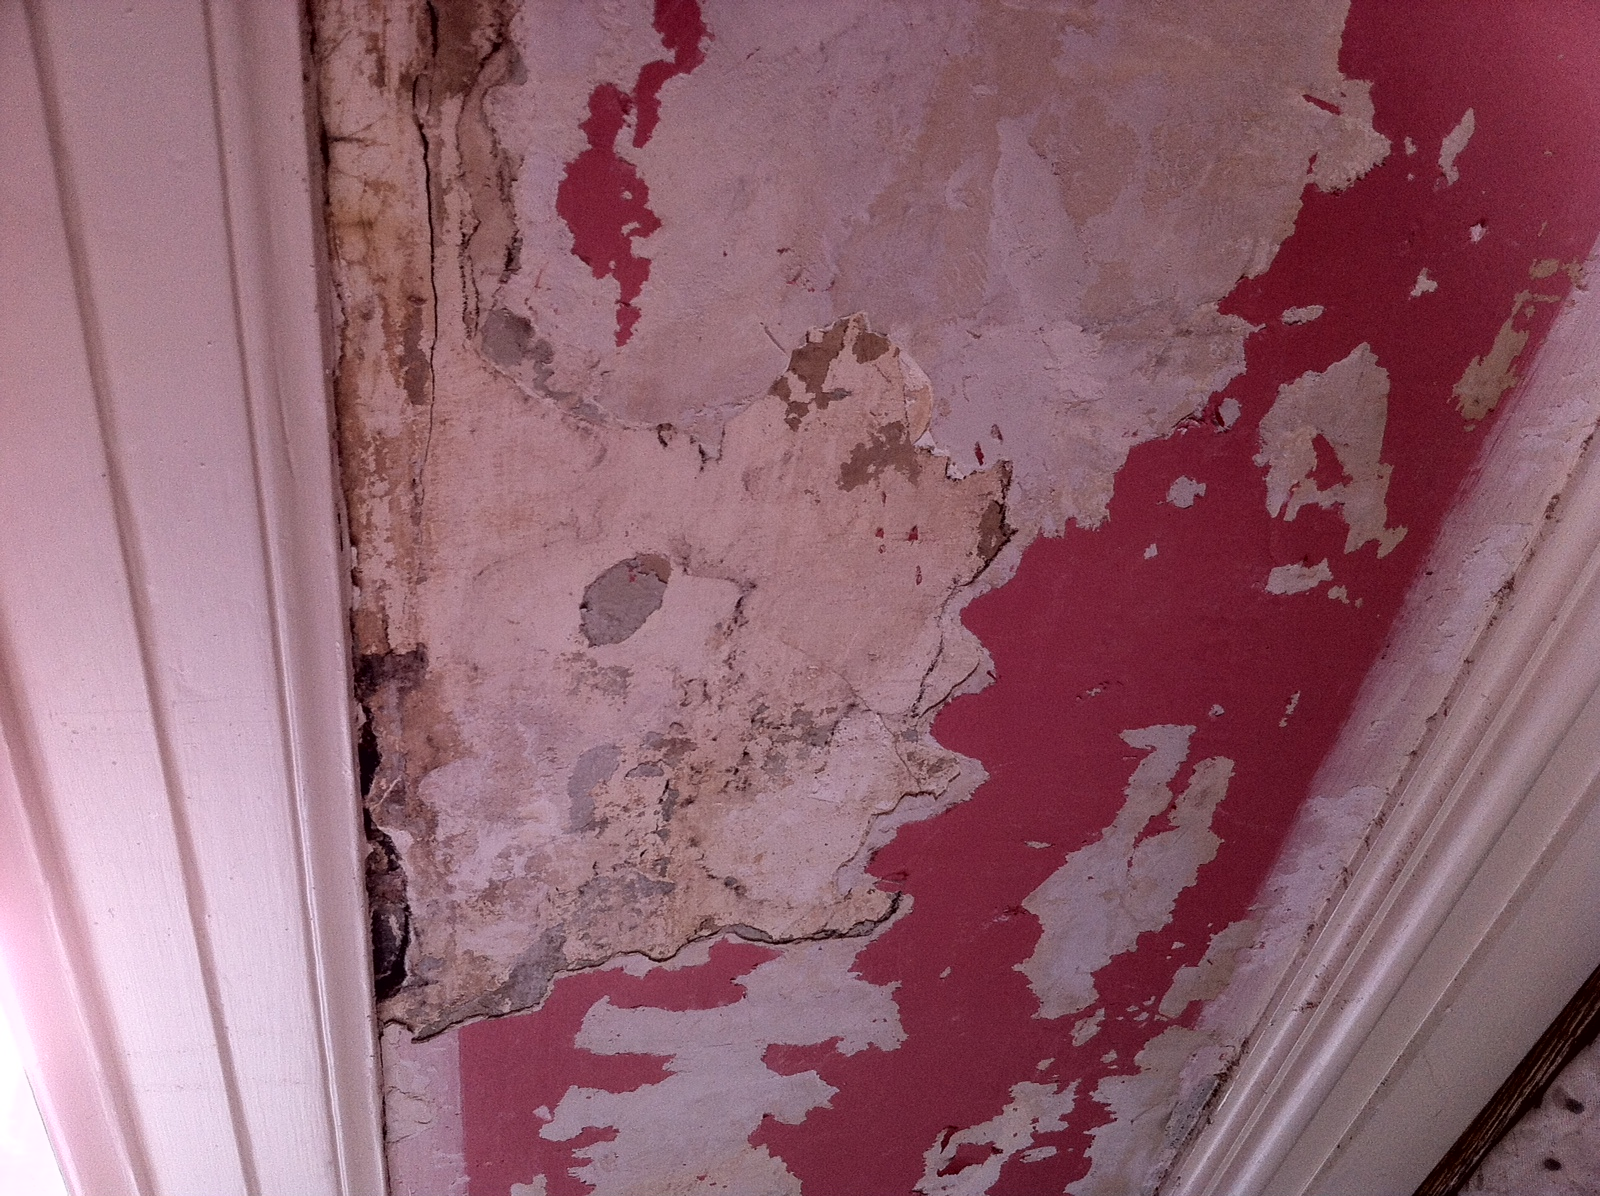 How to remove wallpaper paste from sheetrock - Repairing Drywall After Removing Wallpaper